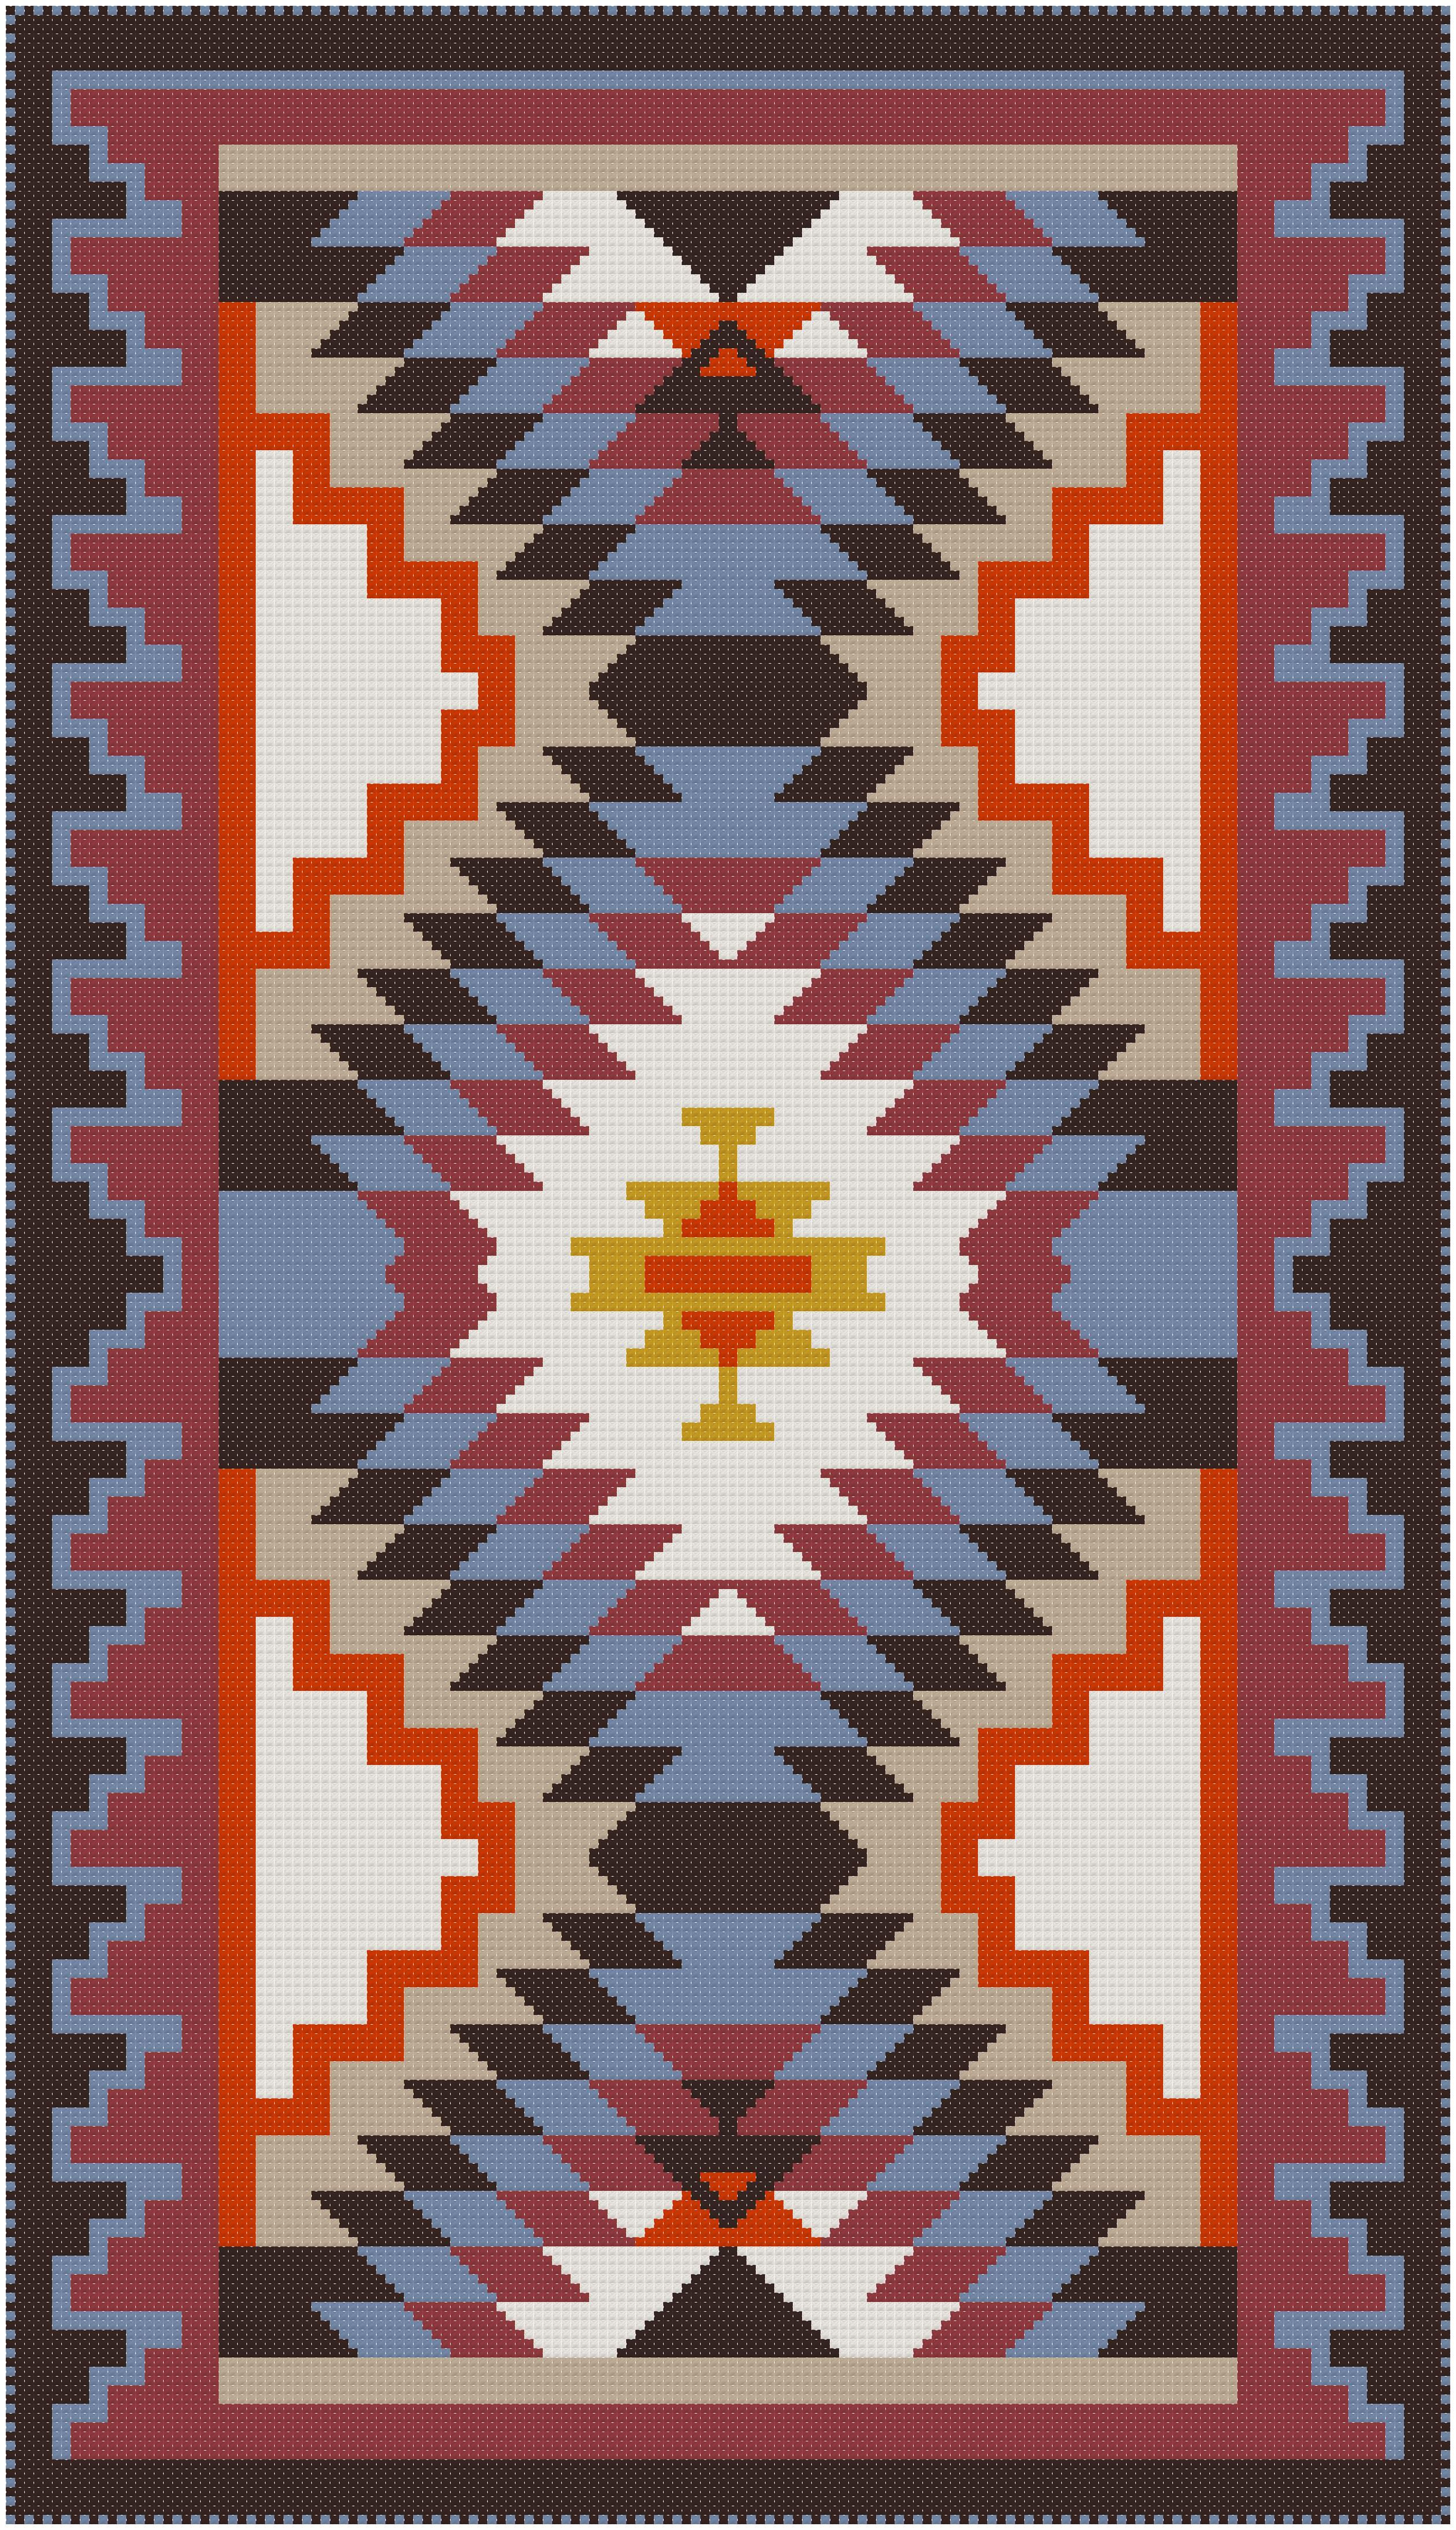 Teppich Knüpfen Muster This Cross Stitch Pattern Features A Design Taken From A